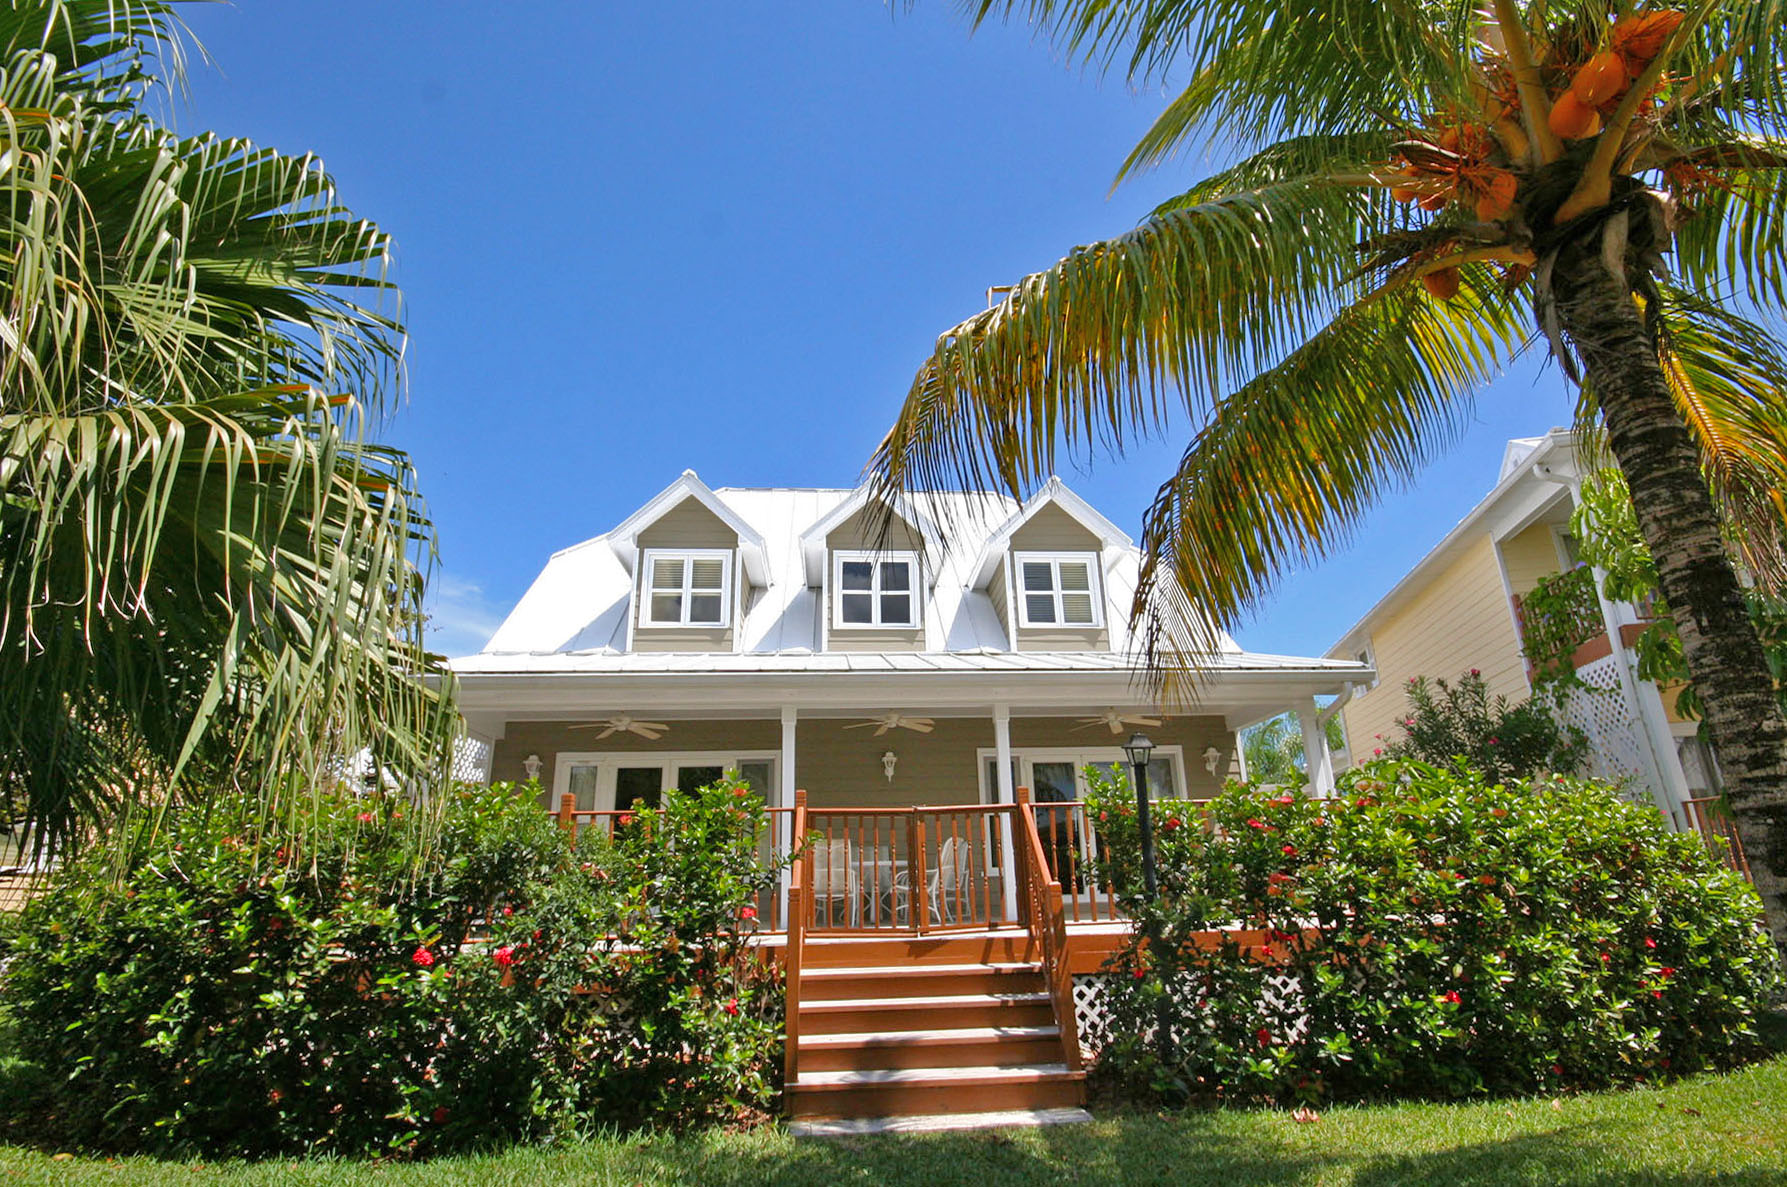 Casa Unifamiliar por un Venta en Island Home in Shoreline, Fortune Beach, Lucaya - MLS 26912 Shoreline, Lucaya, Grand Bahama Bahamas